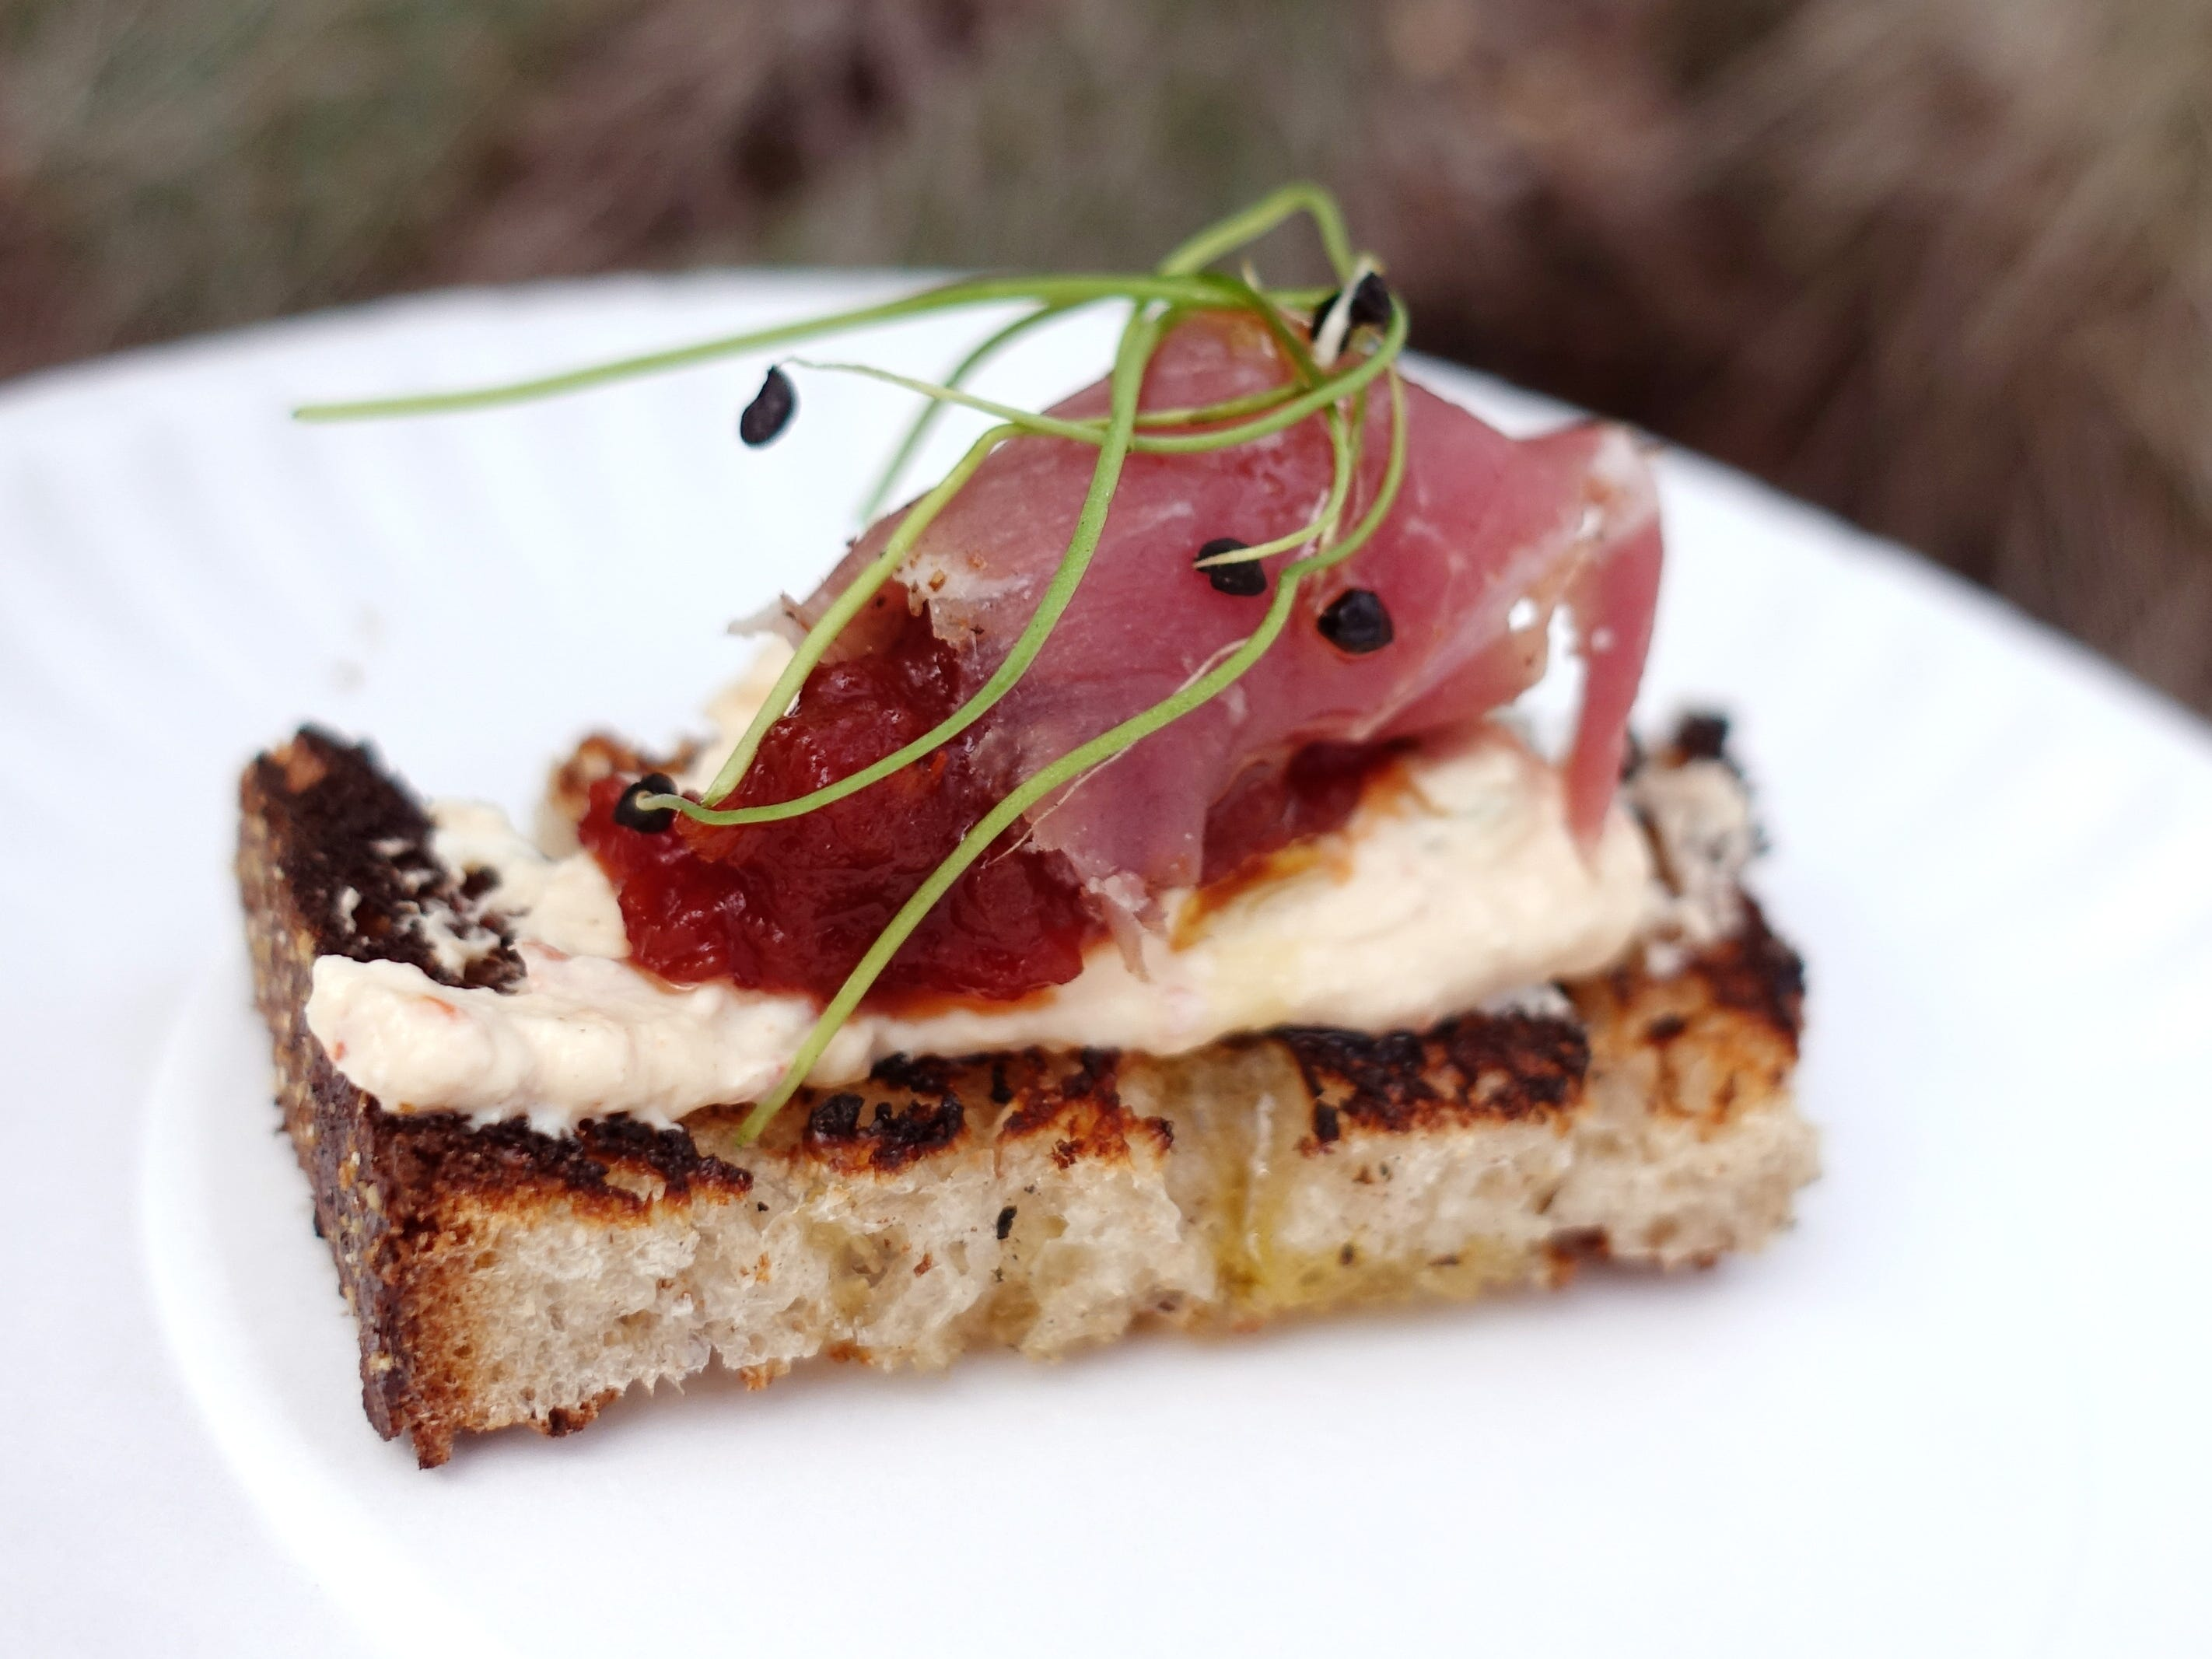 Pimento cheese with Allan Benton's aged ham, tomato jam and grilled Noble sourdough from The Larder + The Delta at the 2019 Devour Culinary Classic at the Desert Botanical Garden in Phoenix.